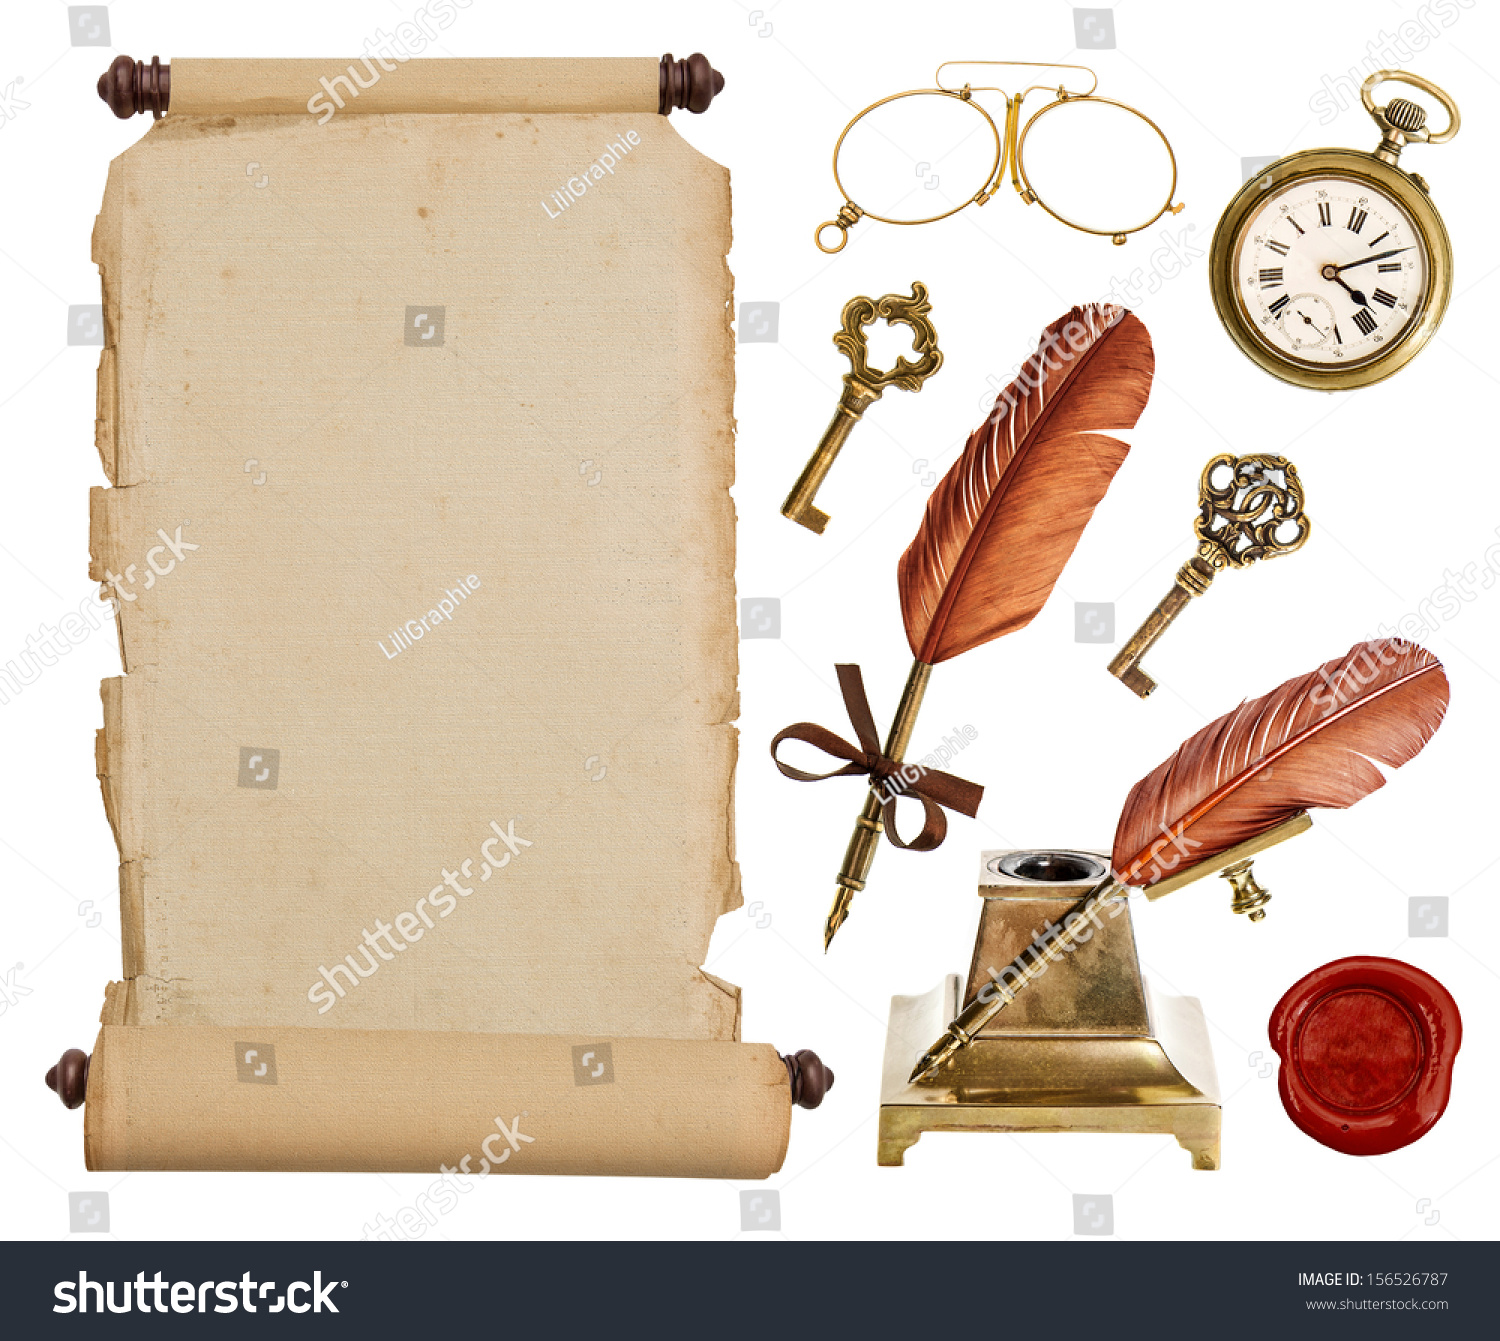 Antique Scroll Paper: Old Vintage Paper Scroll And Antique Accessories Isolated